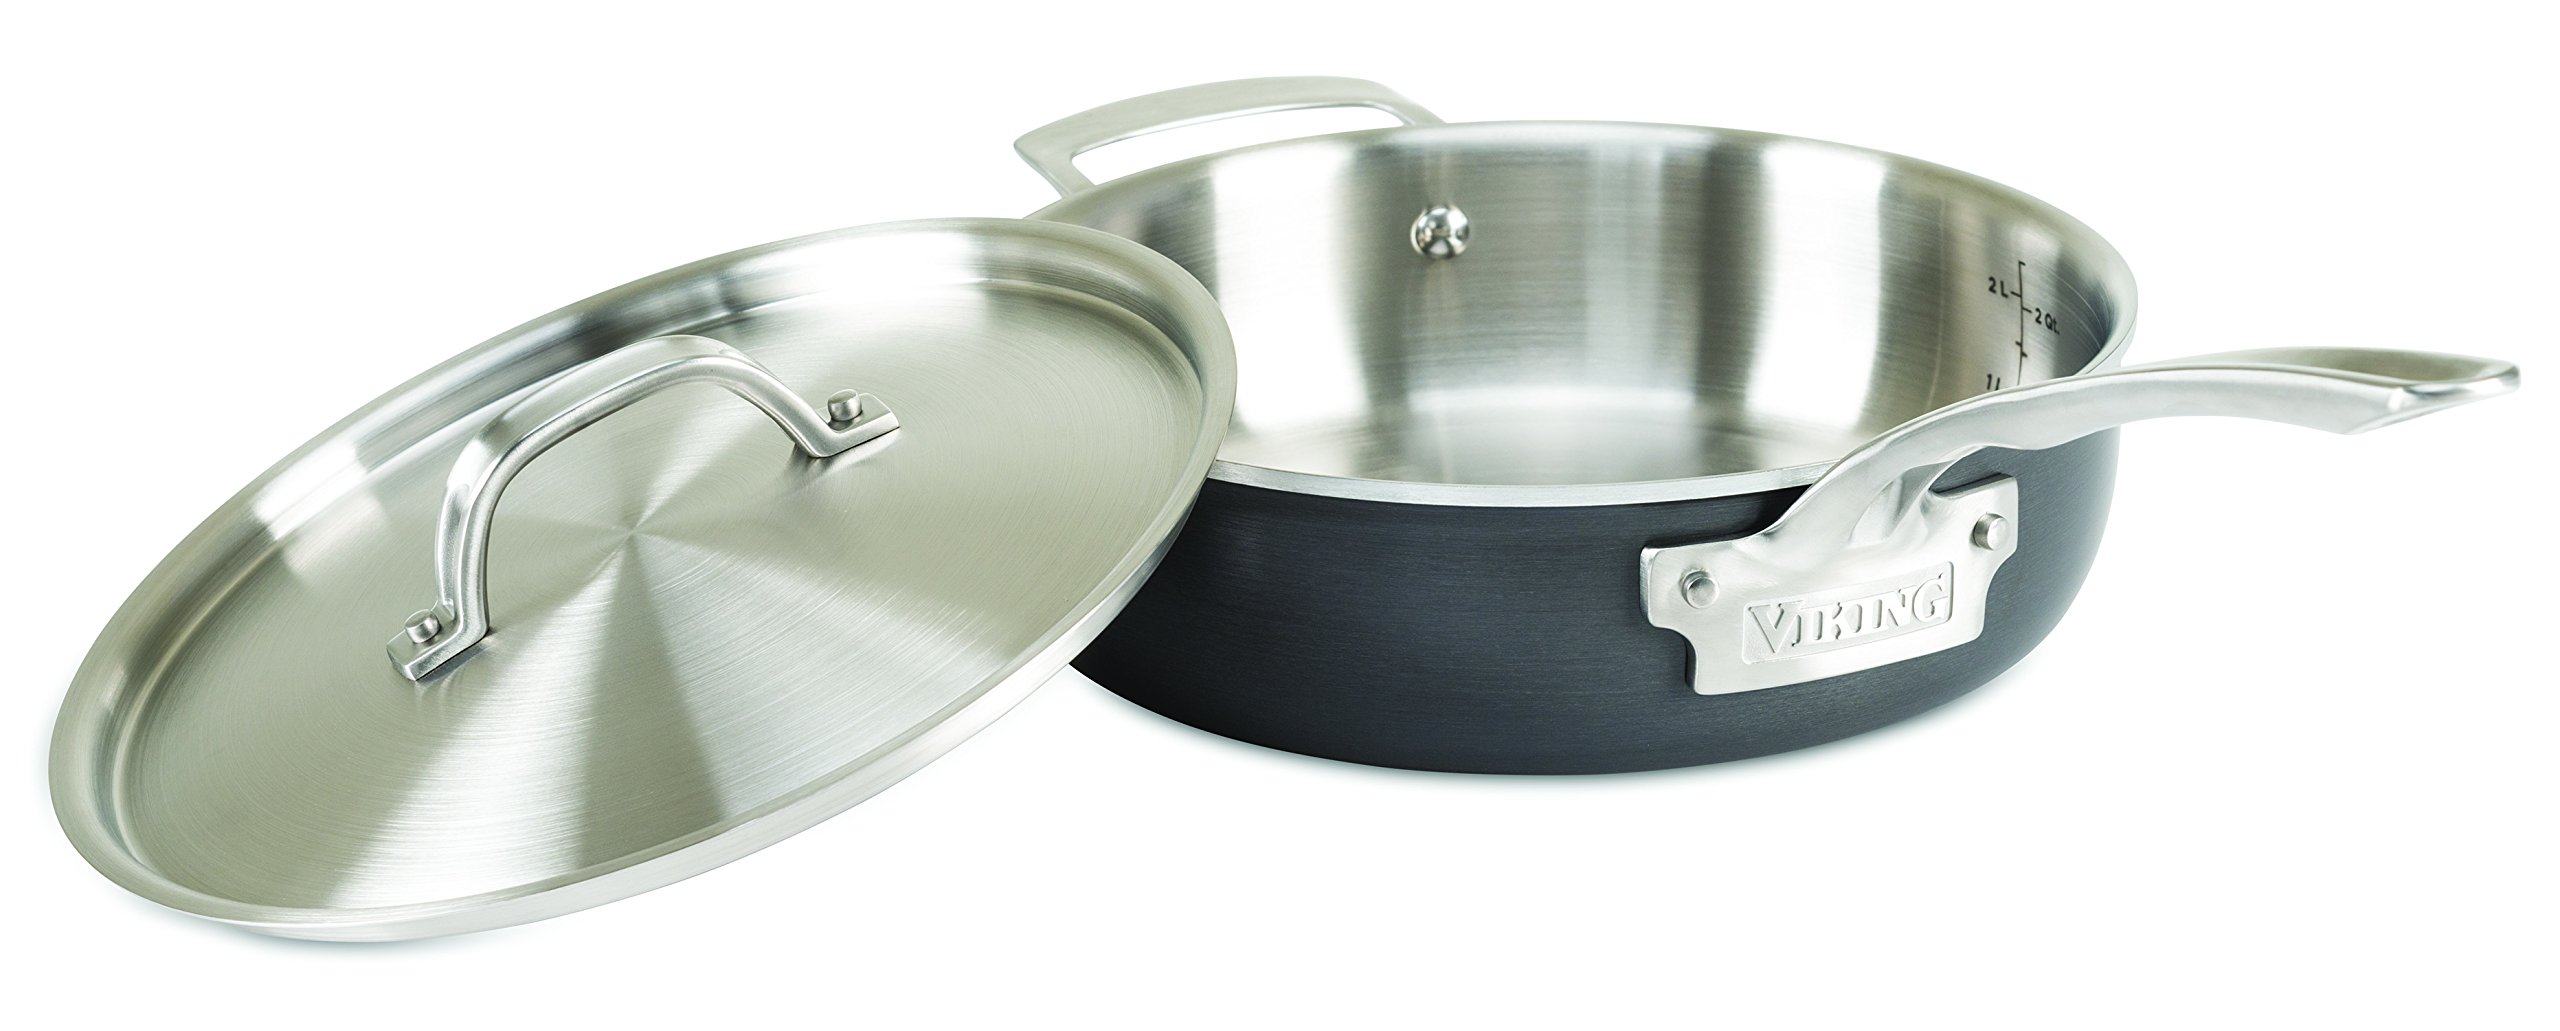 Viking 5-Ply Hard Stainless Sauté Pan with Hard Anodized Exterior, 3 Quart